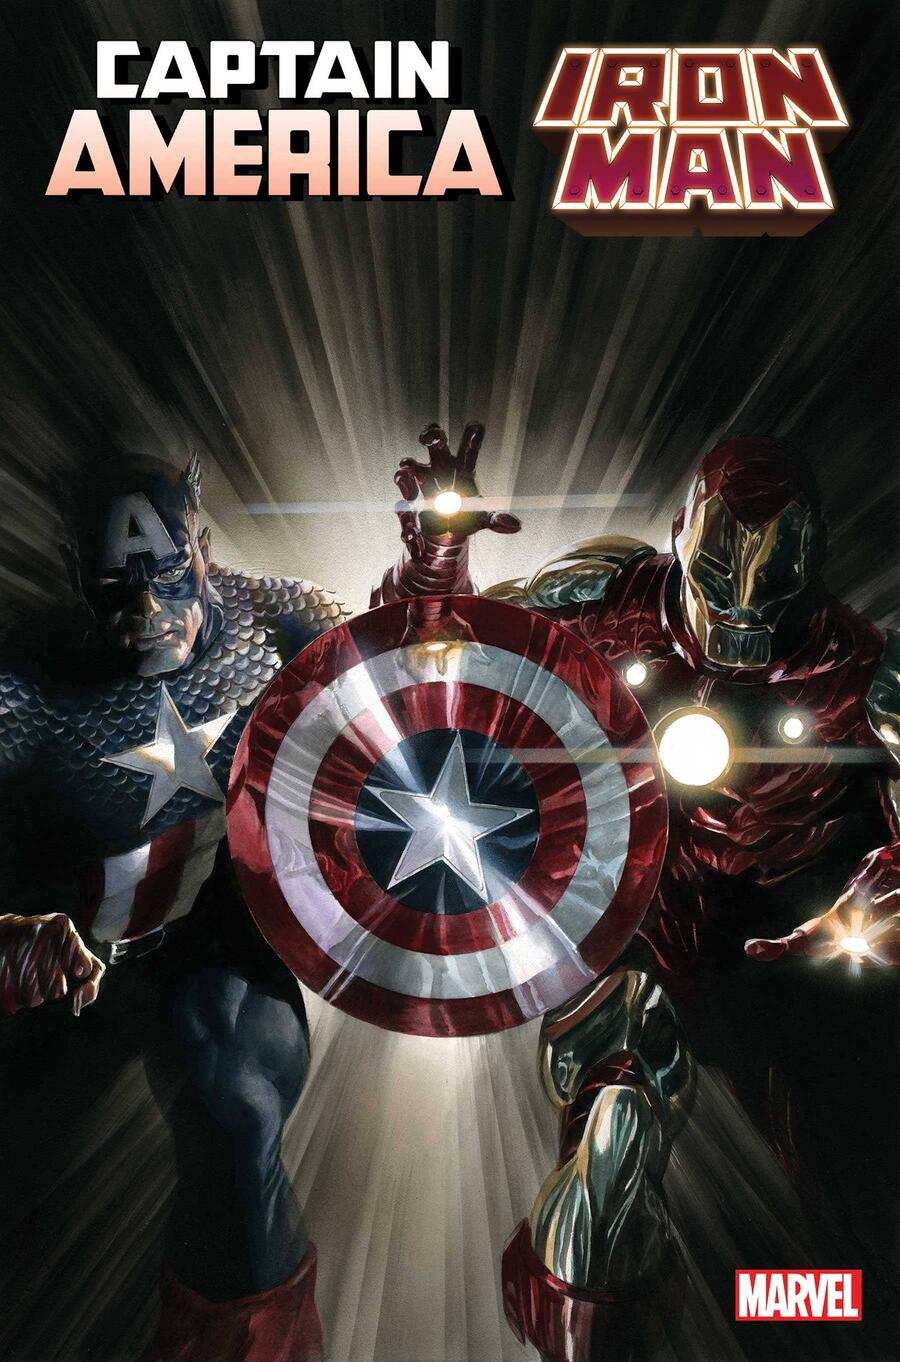 CAPTAIN AMERICA/IRON MAN #1 cover by Alex Ross